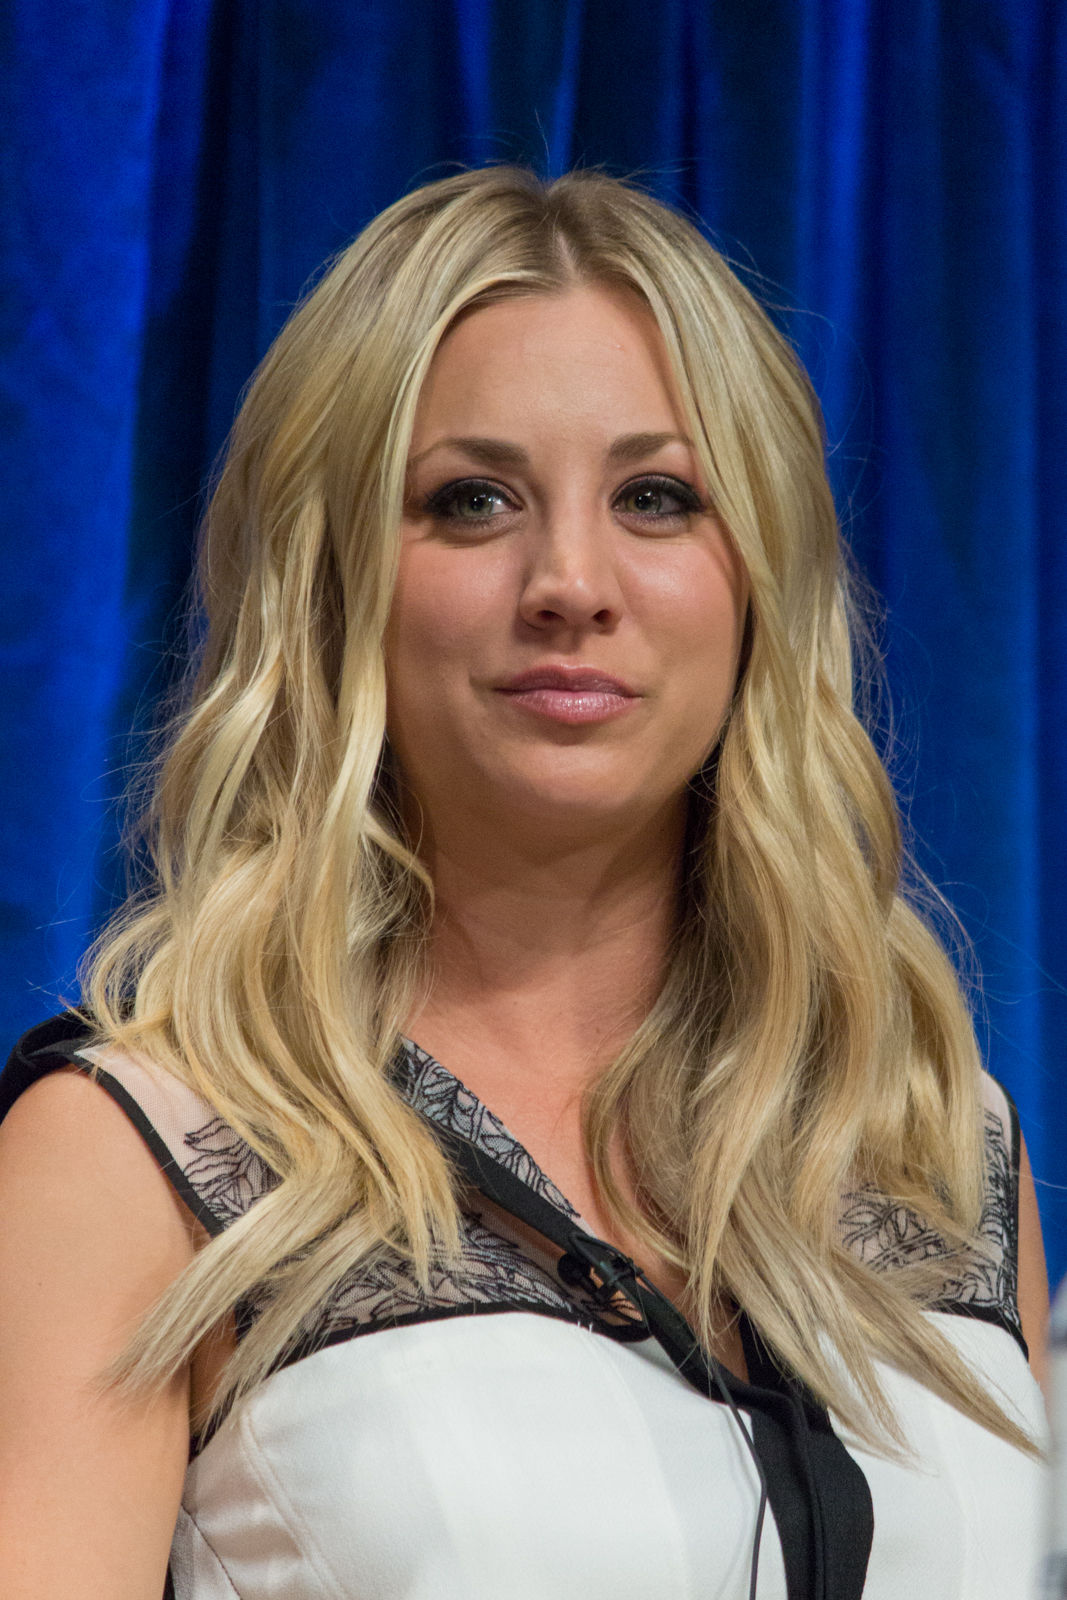 Photo of Kaley Cuoco: American film and television actress